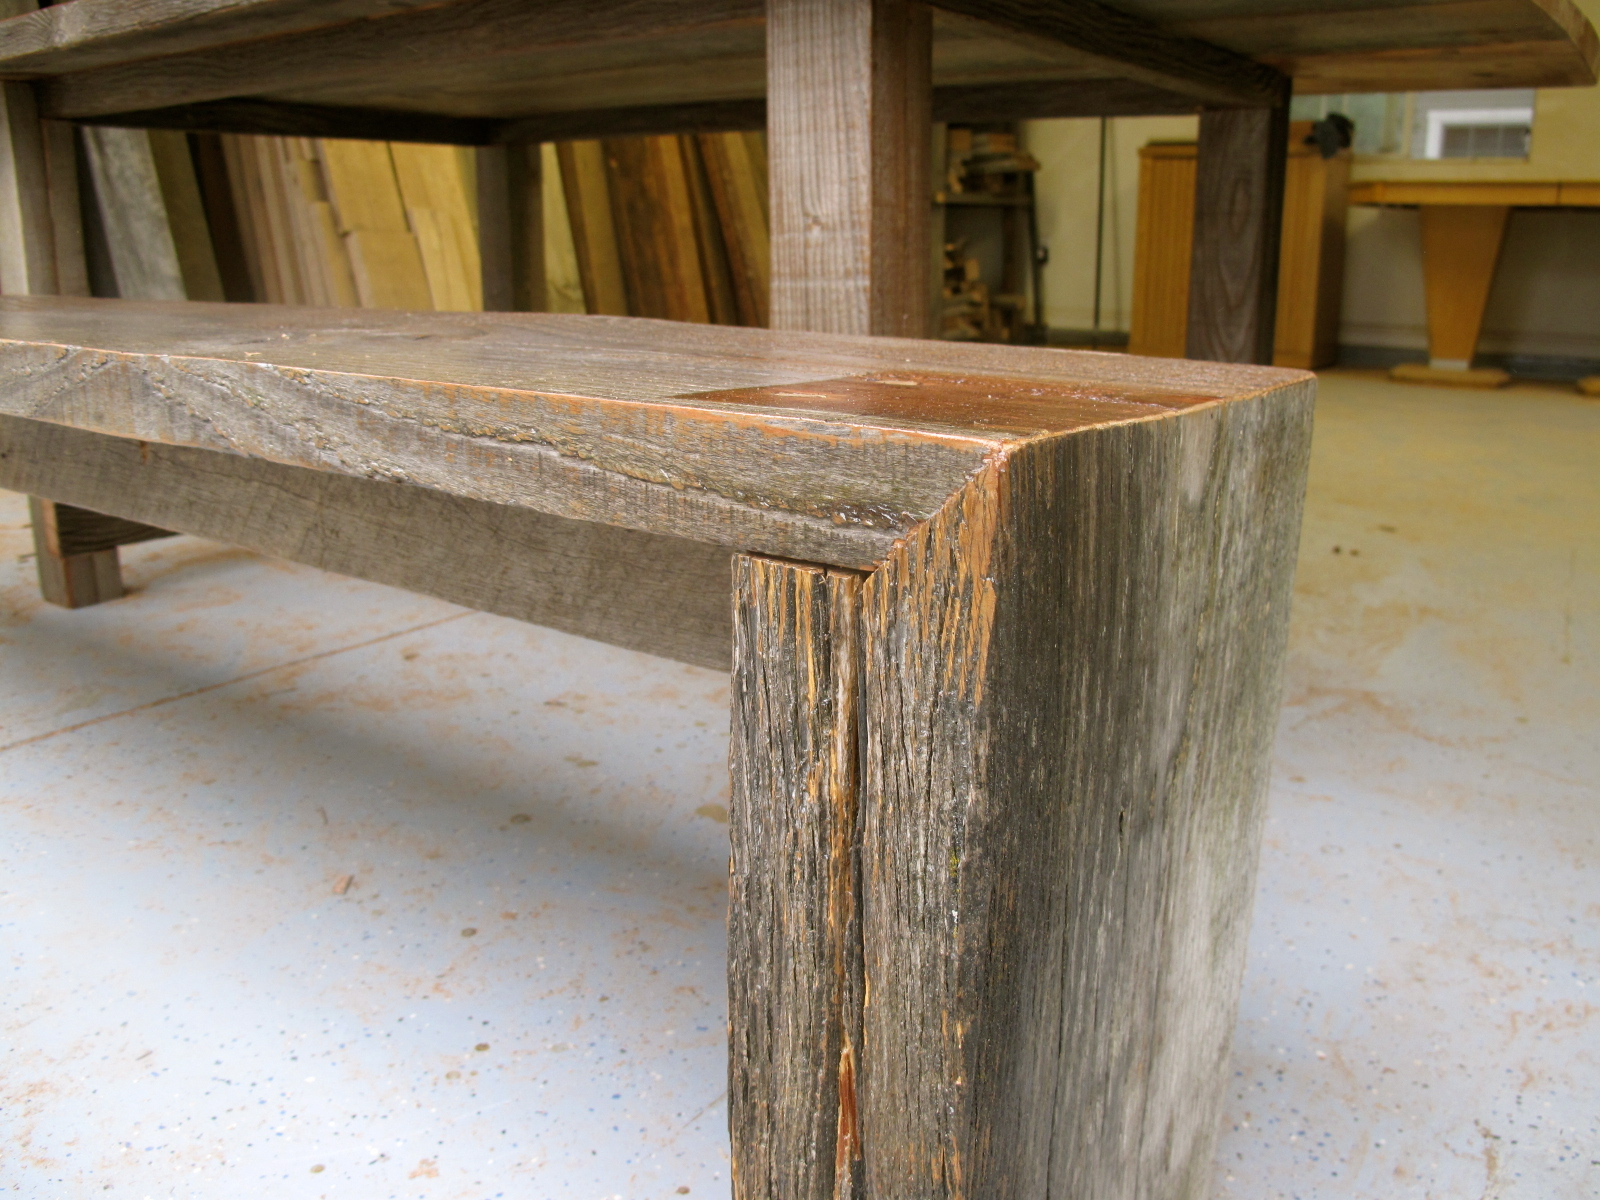 Marvelous photograph of Nakashima style free edge redwood slab coffee table by bcdrygoods with #654922 color and 1600x1200 pixels